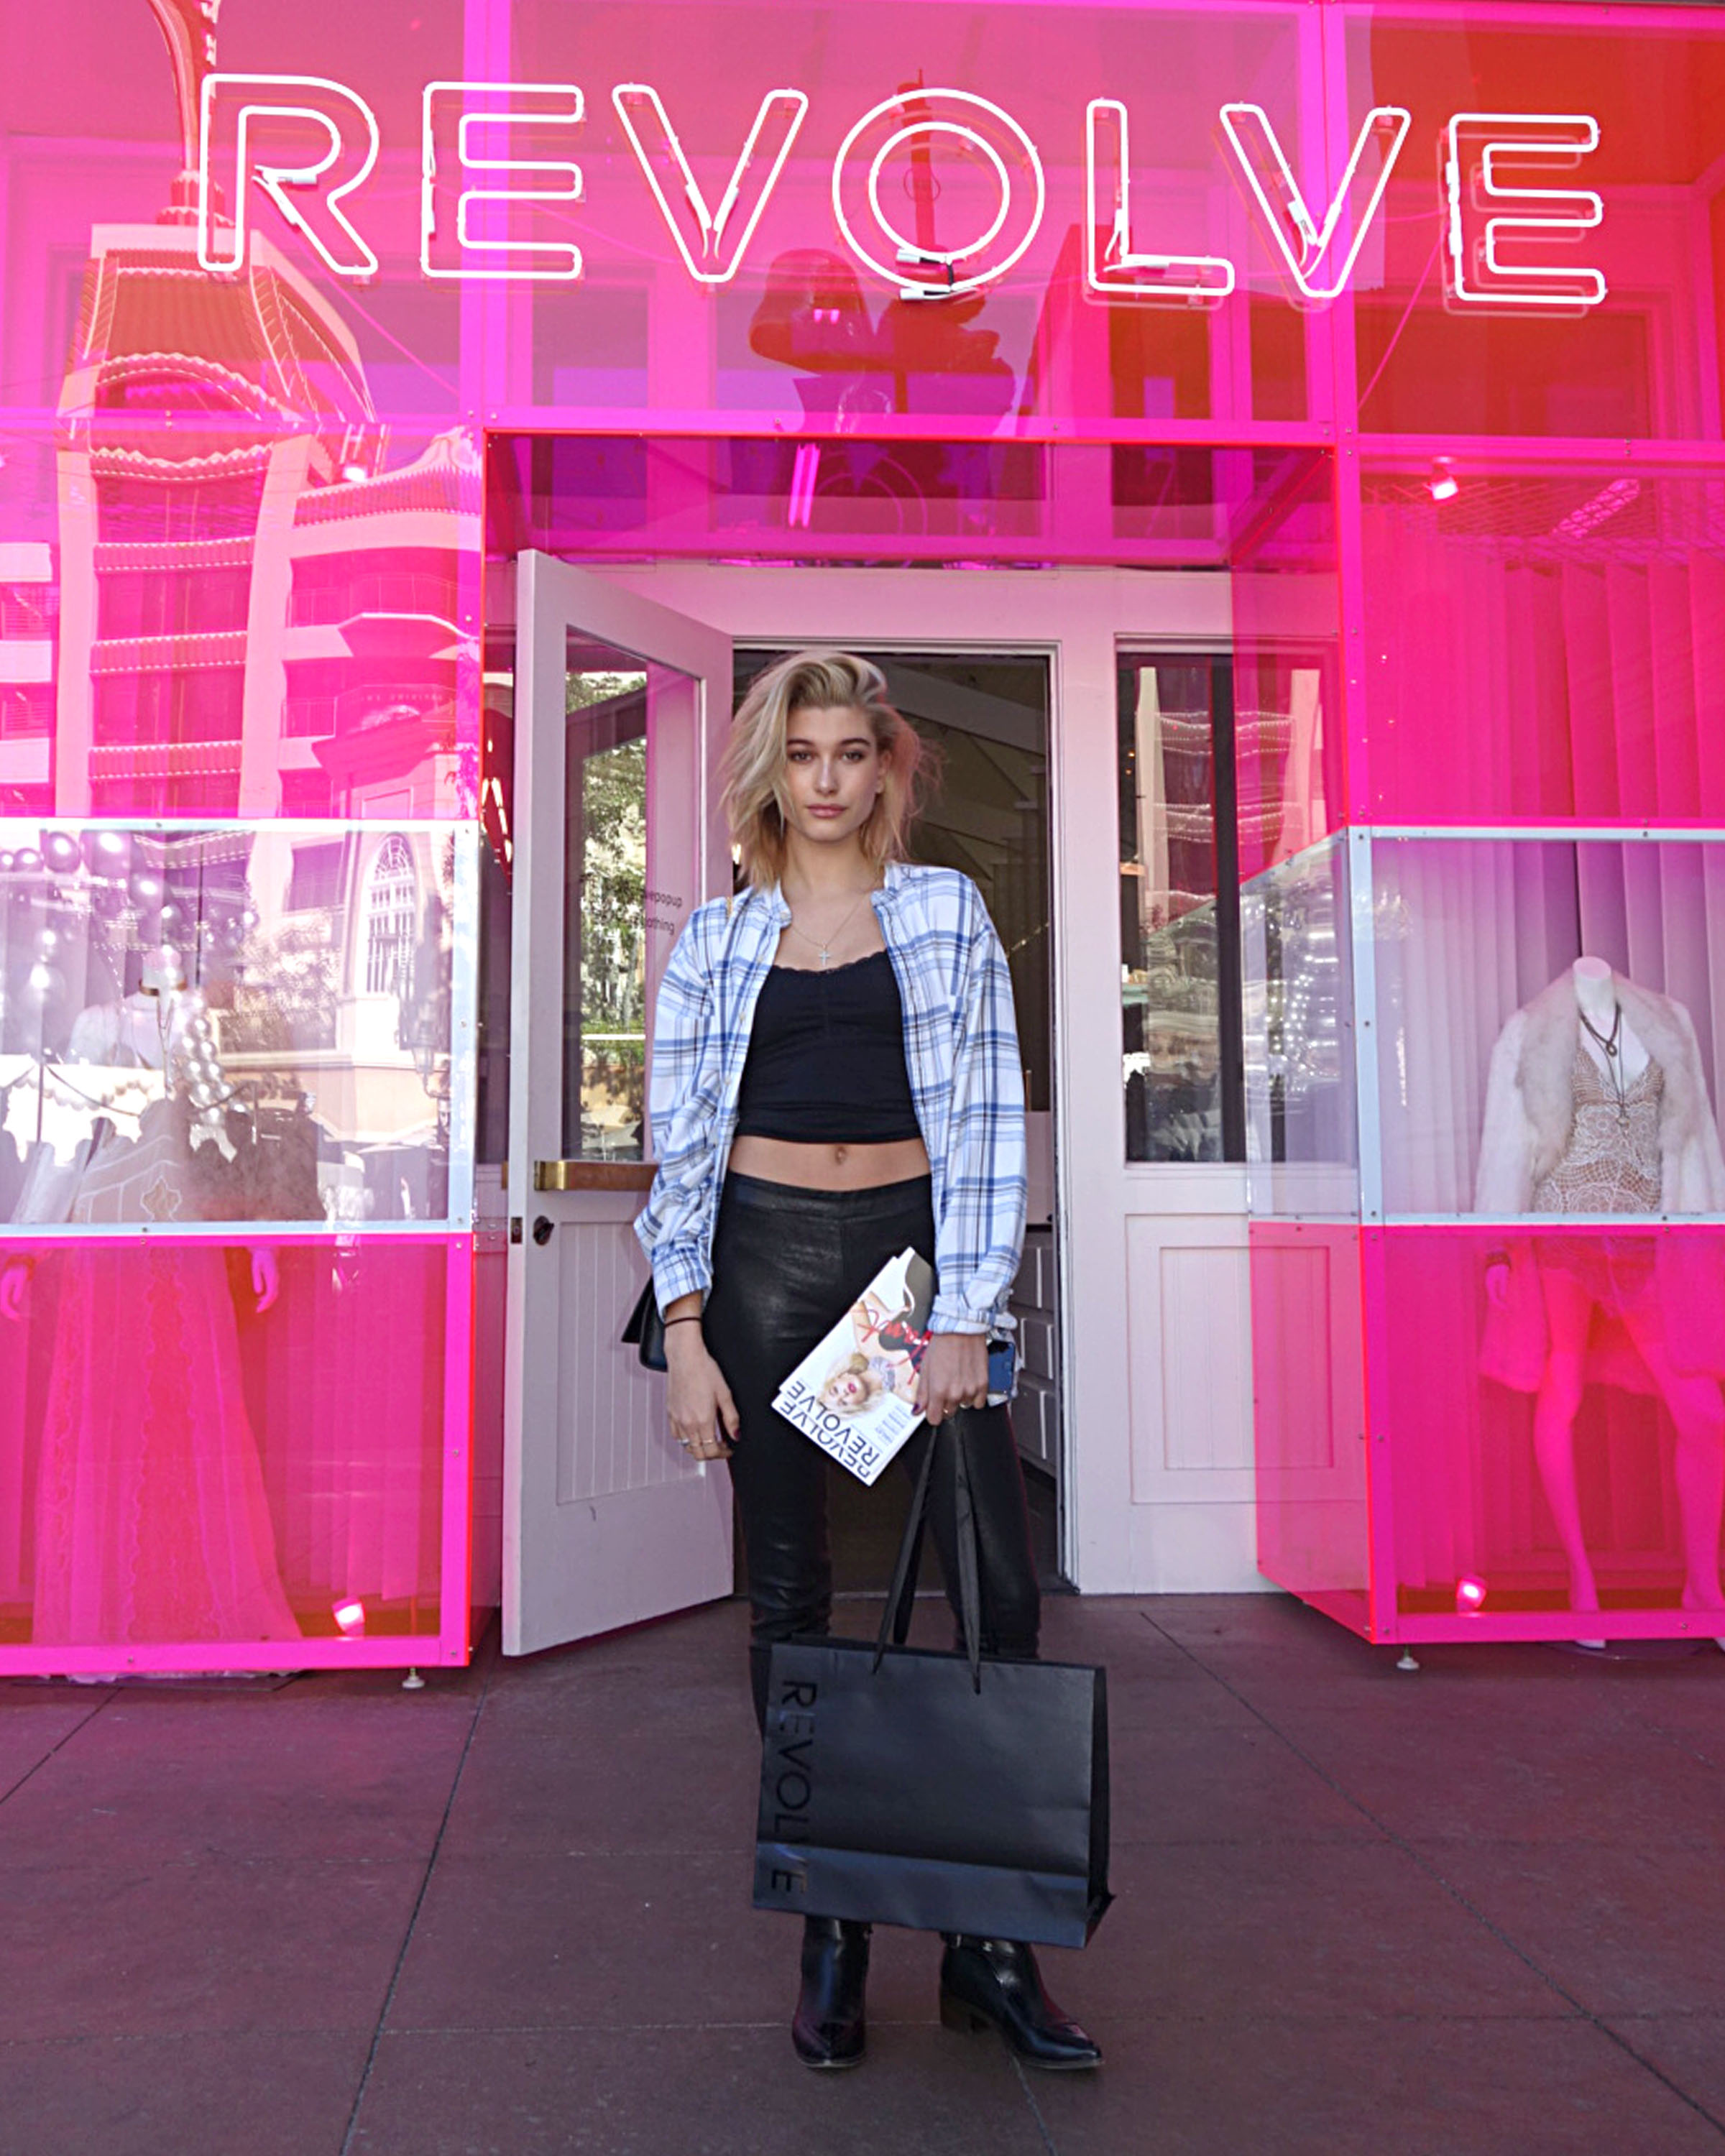 Revolve Boutiques: Holiday 2014